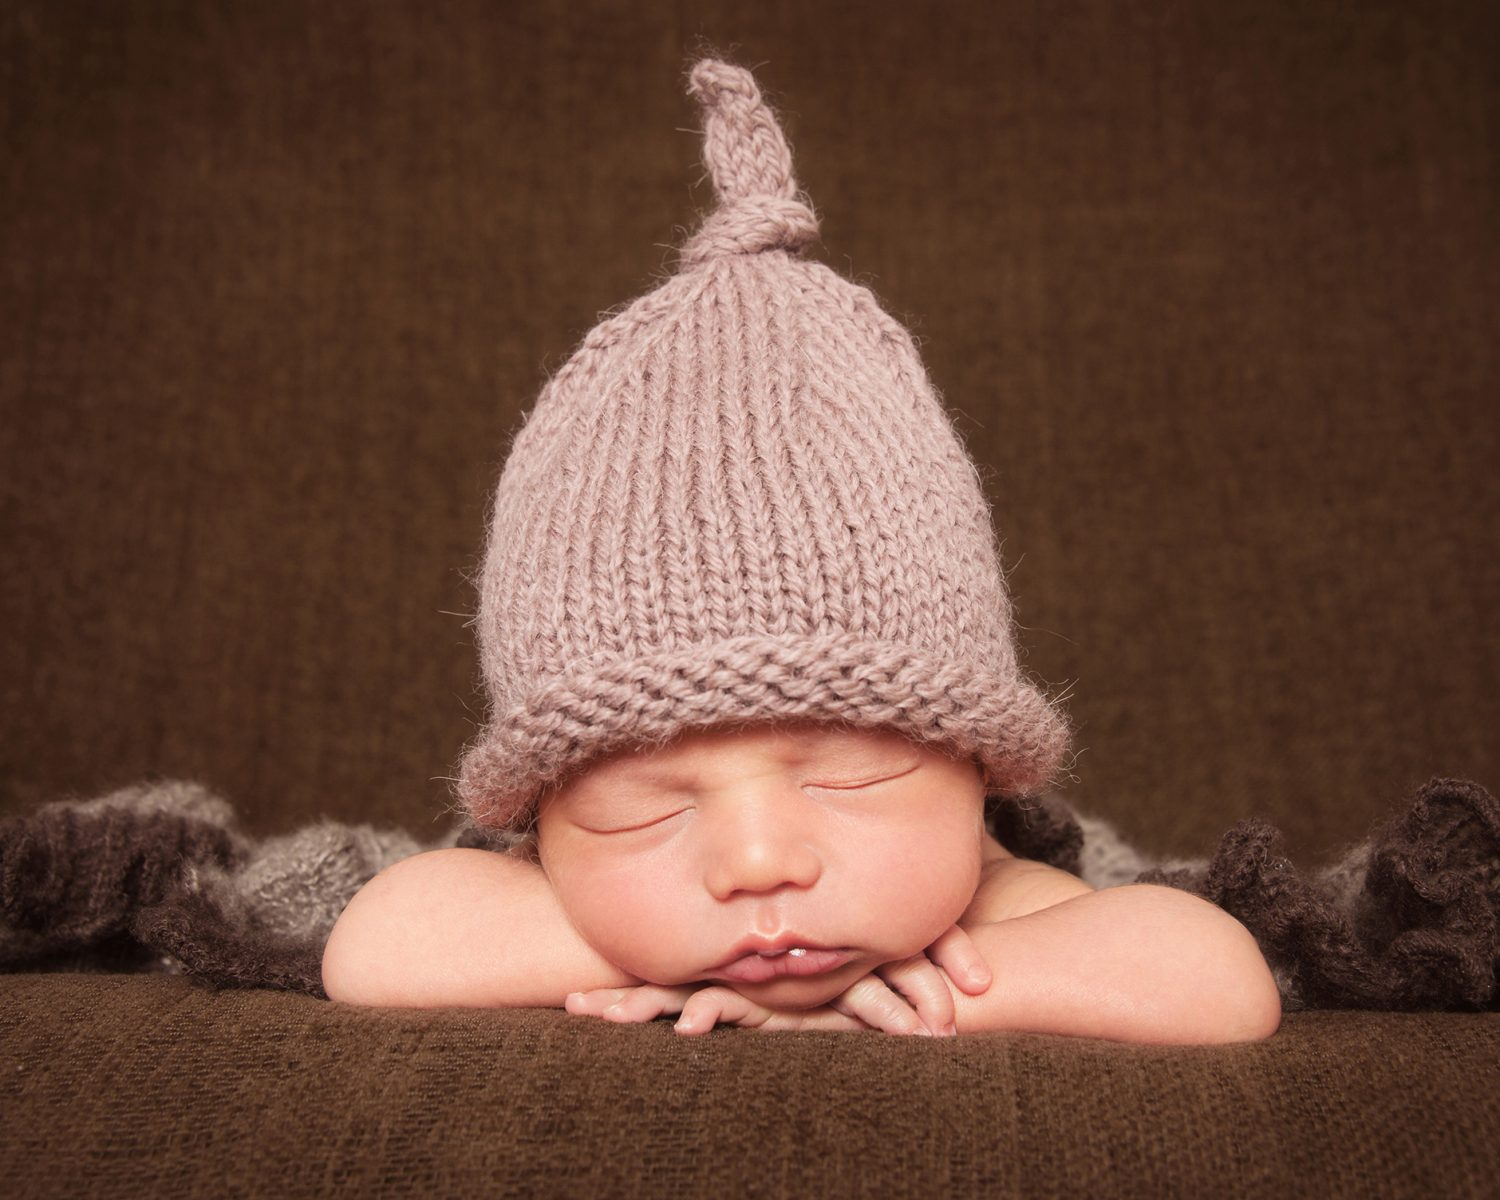 Melbourne award winning newborn photographer